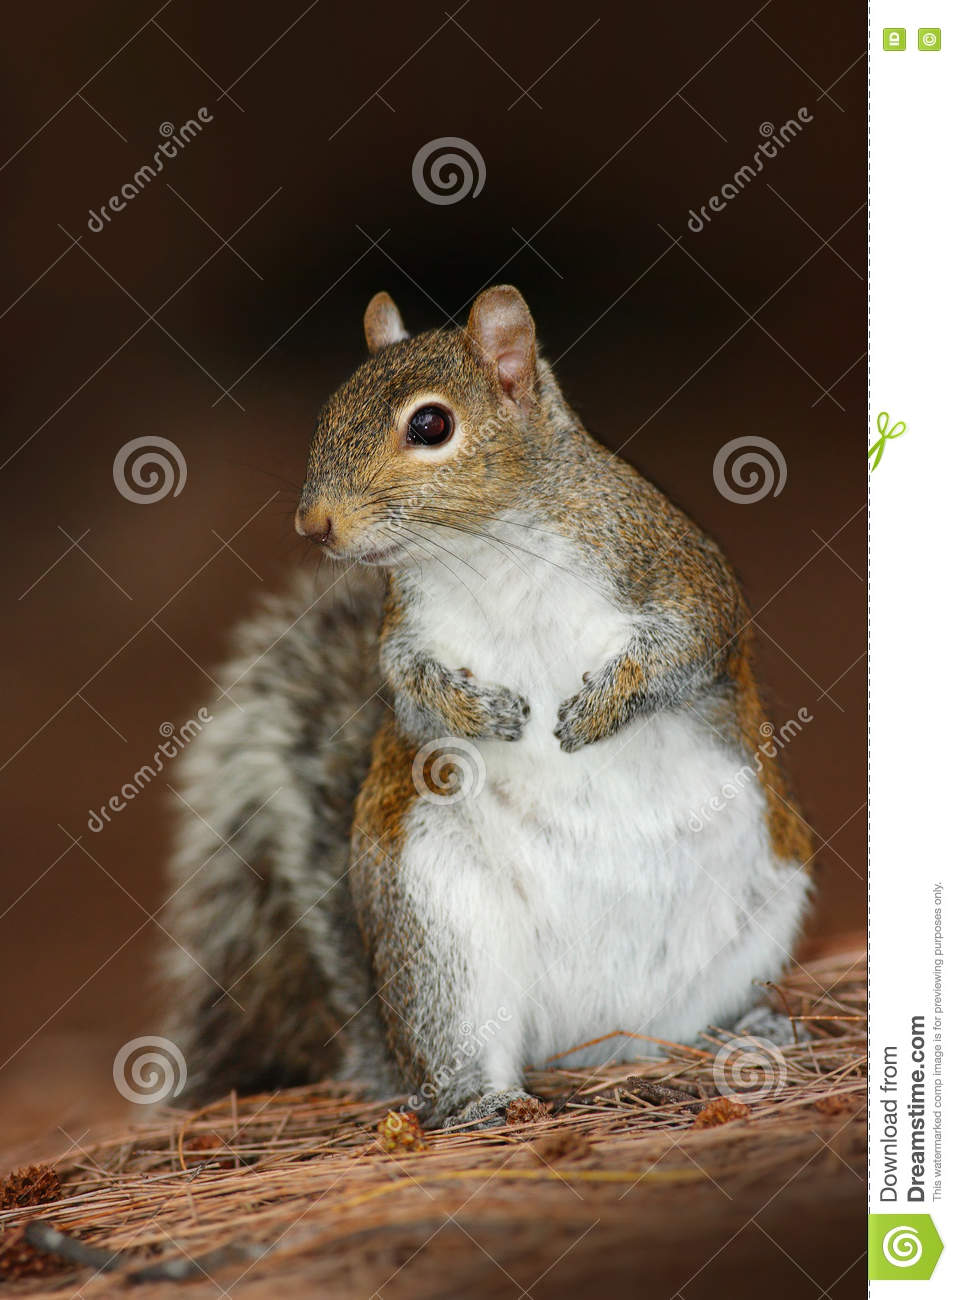 Gray Squirrel, Sciurus carolinensis, in the dark brown forest. Cute animal in the nature habitat. Grey squirrel in the meadow with